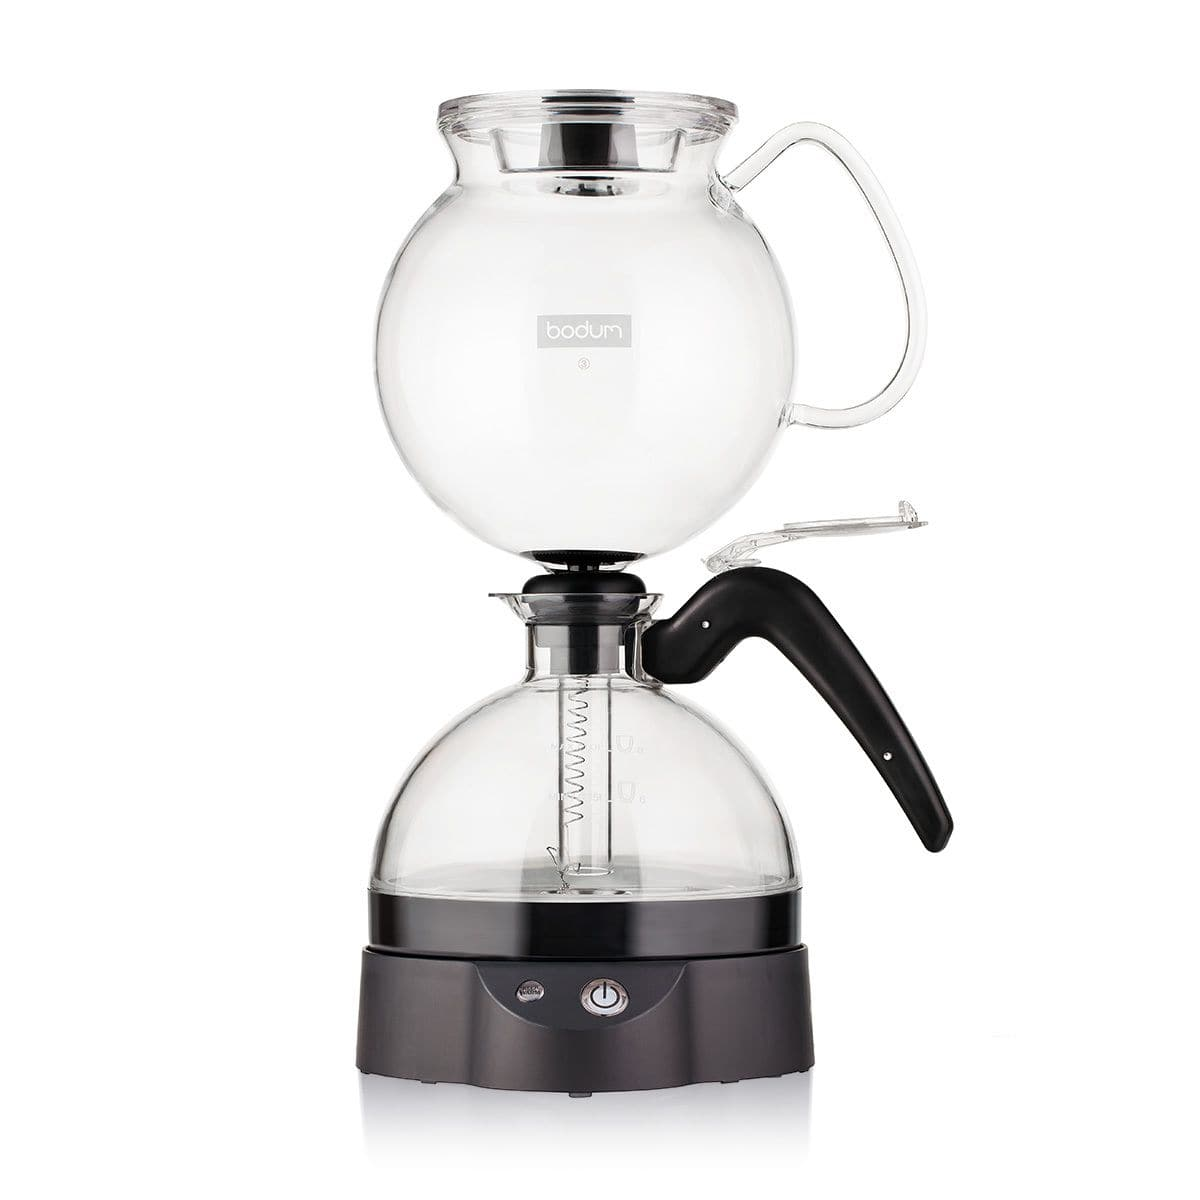 Bodum ePebo 8-Cup Siphon Coffee Maker $80.99